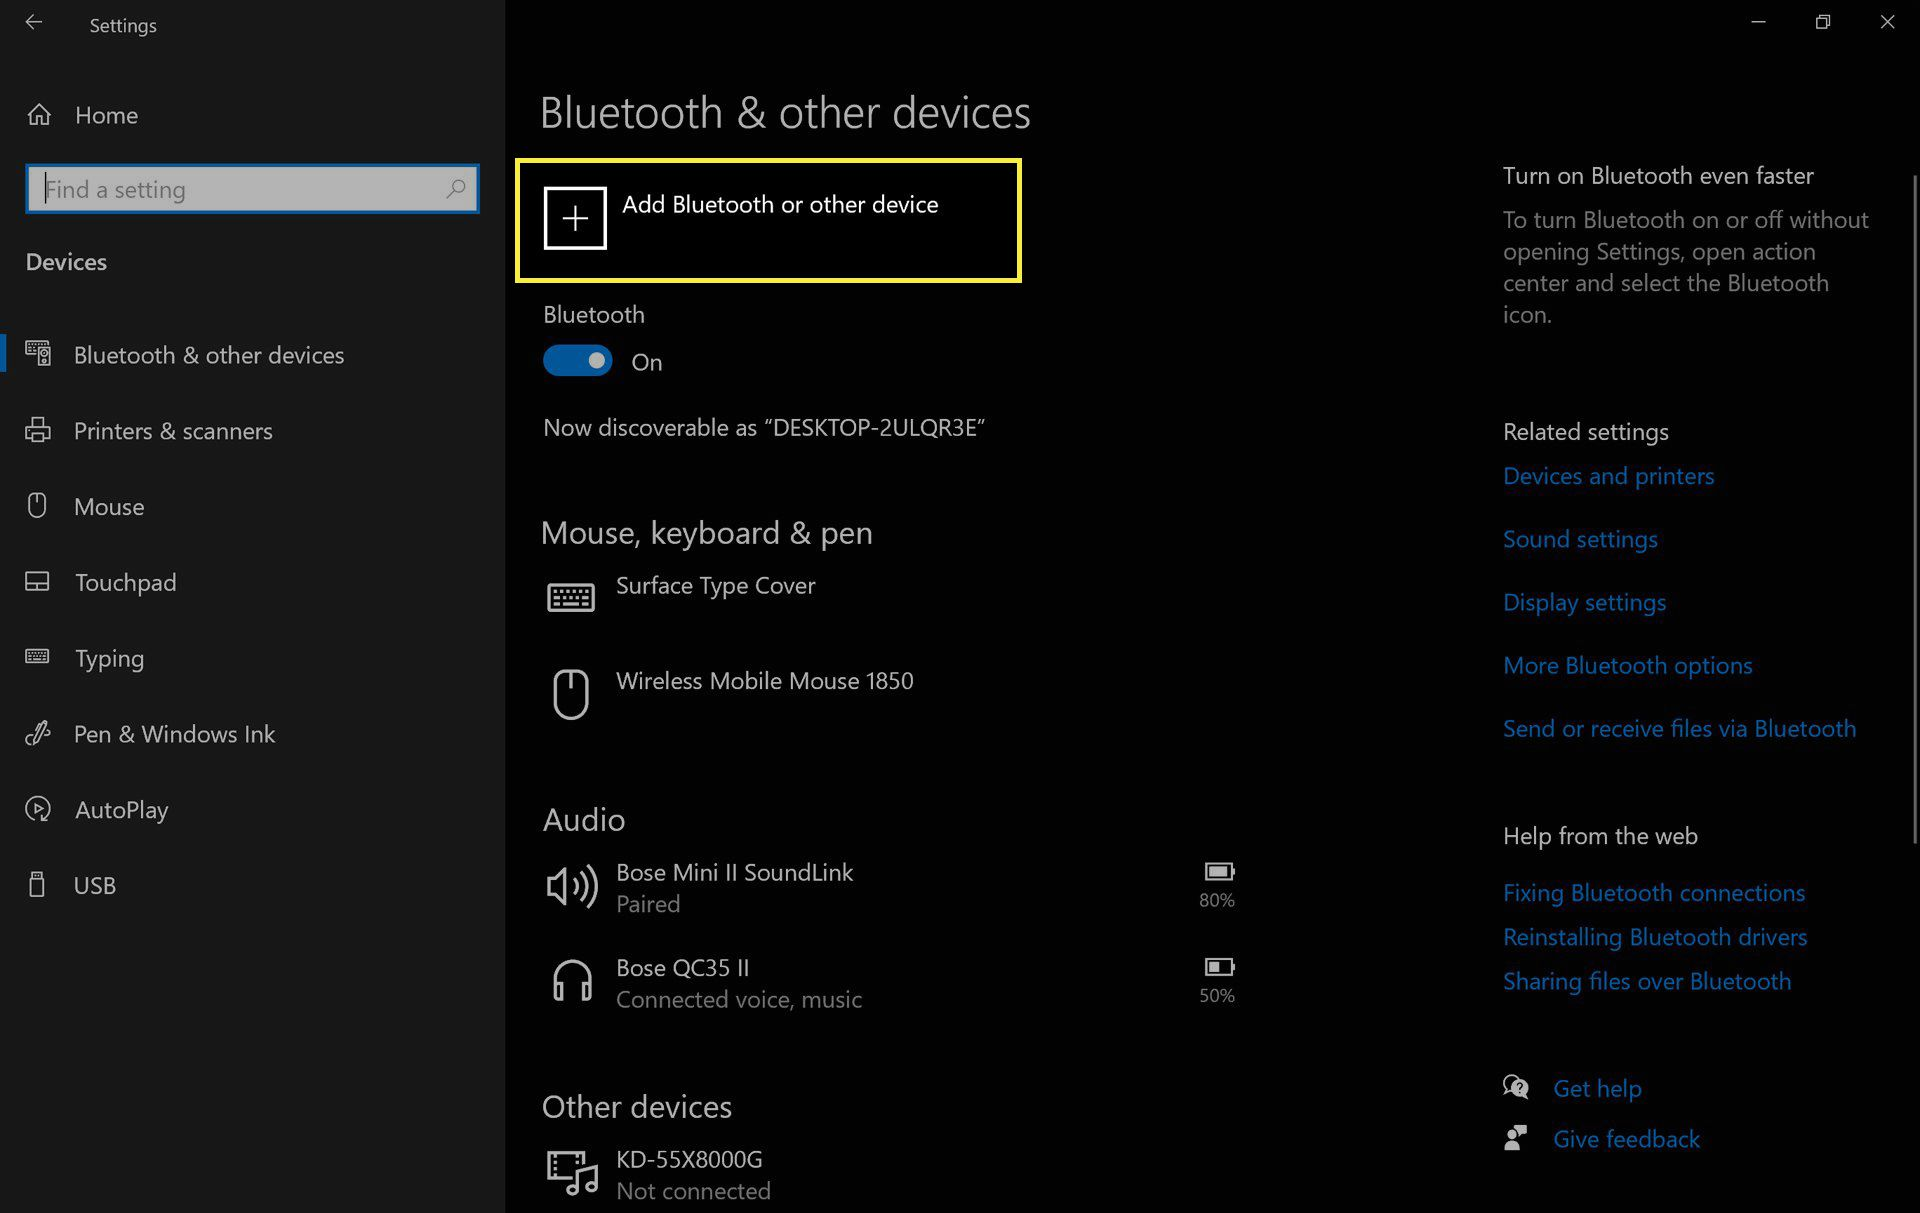 Windows 10 Bluetooth device settings with